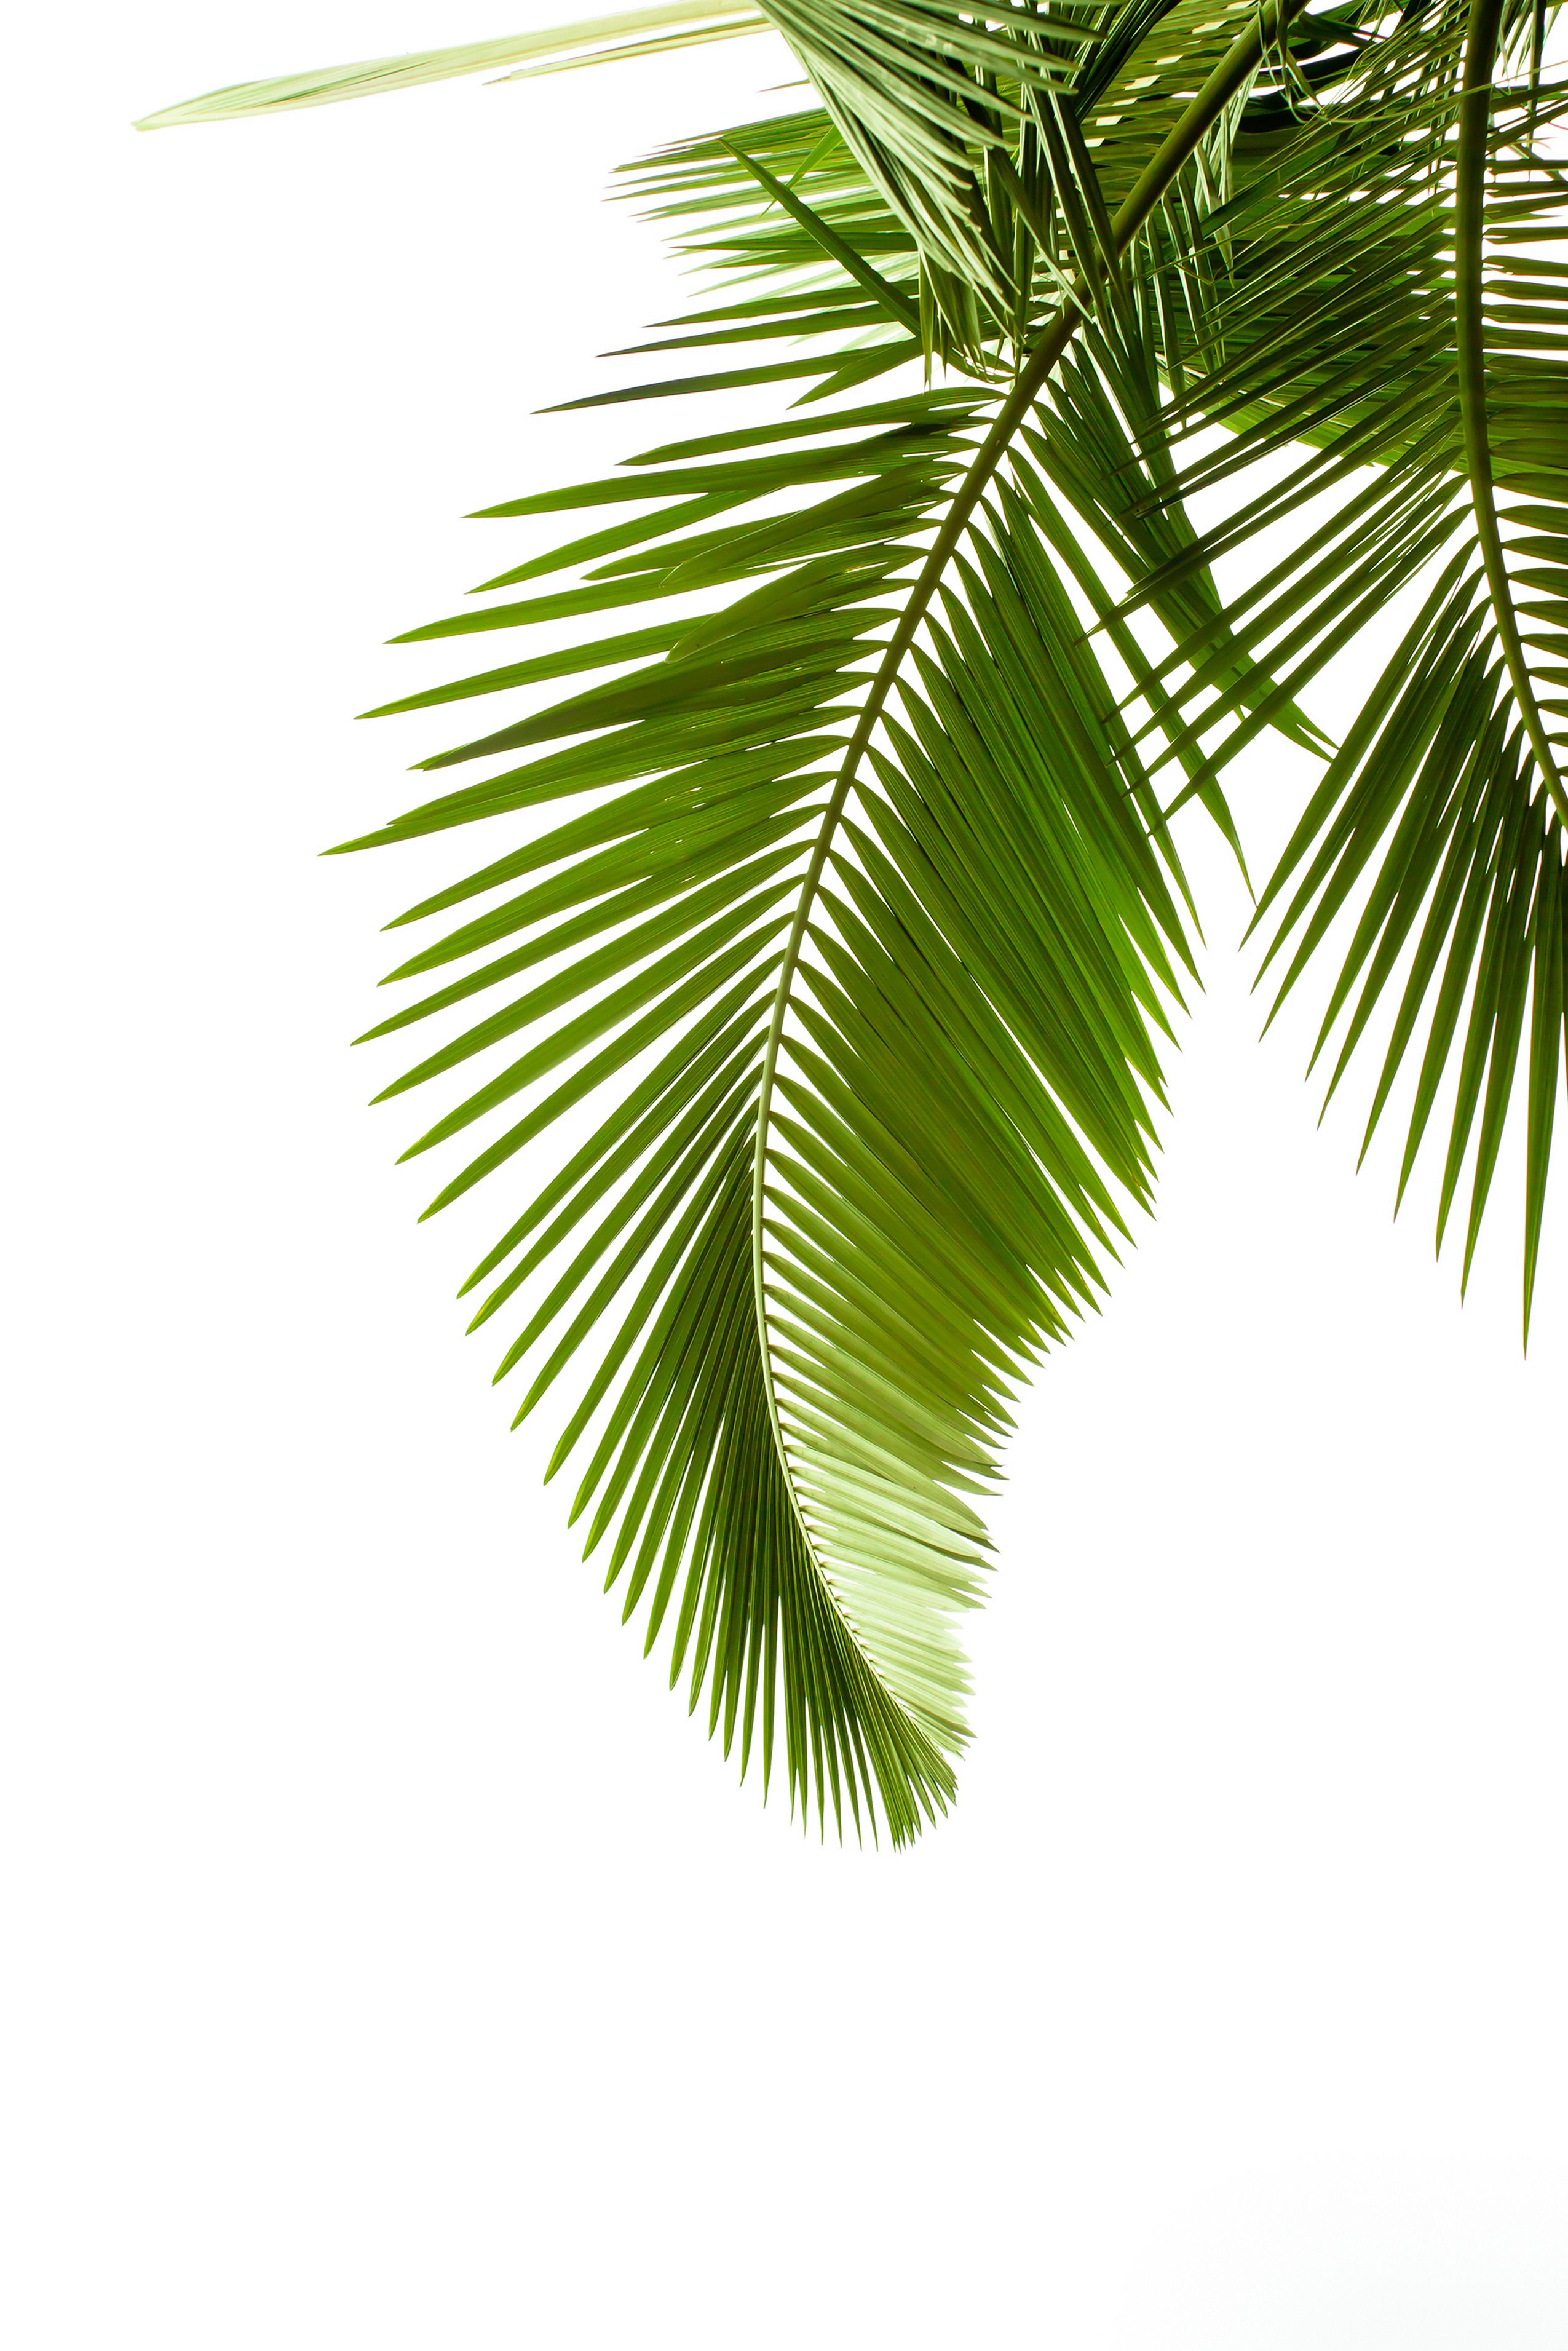 Idea By Mohammad Gm مصطفى الشيخ On Summer Elements Palm Leaves